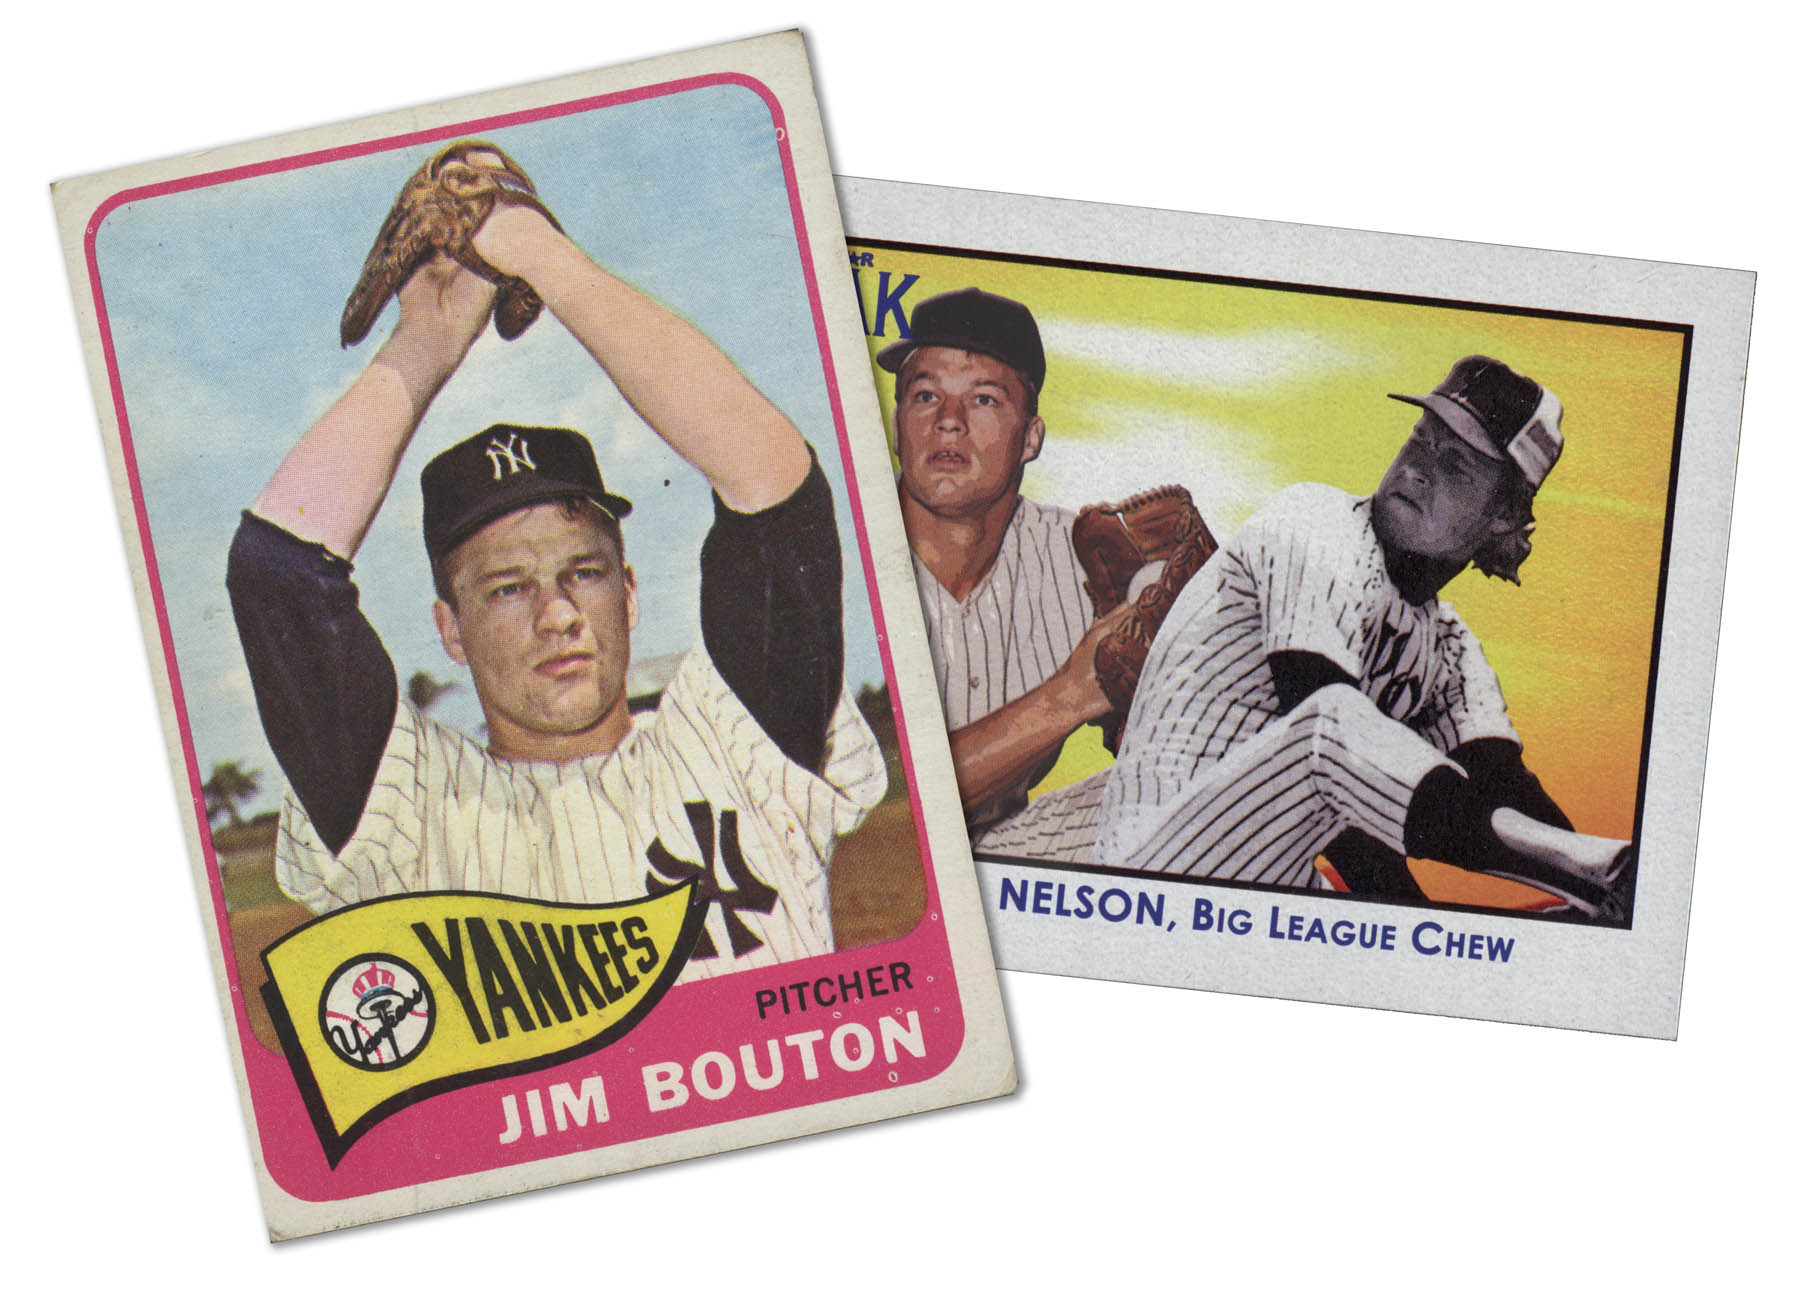 Jim Bouton and Rob Nelson - in baseball card form.